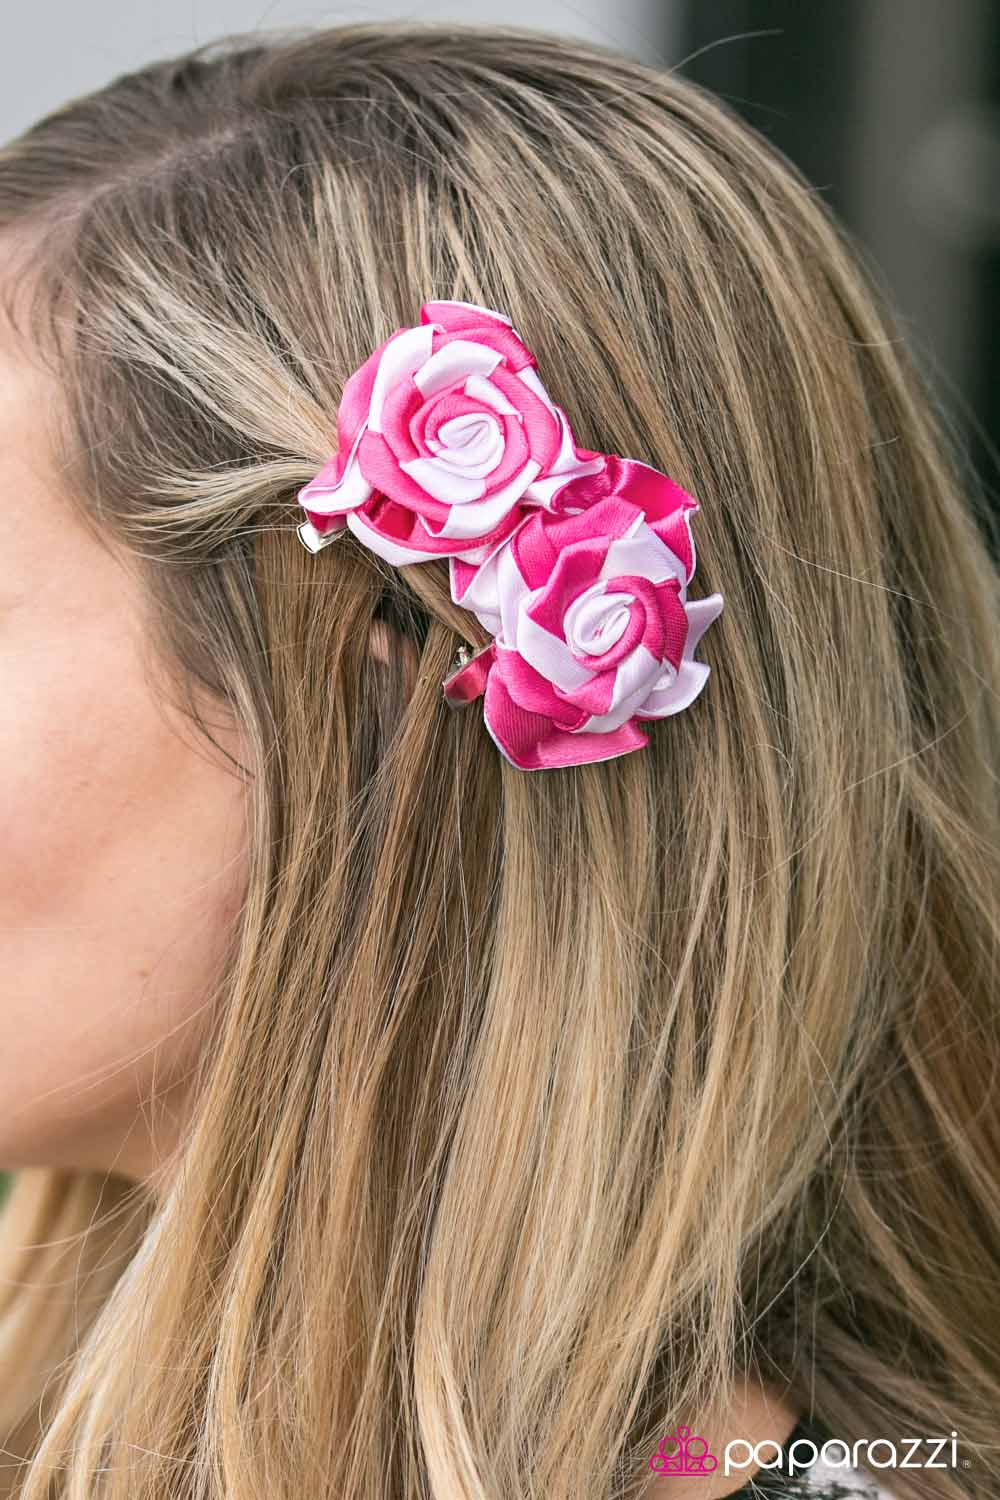 Paparazzi Accessories Check This Out Pink